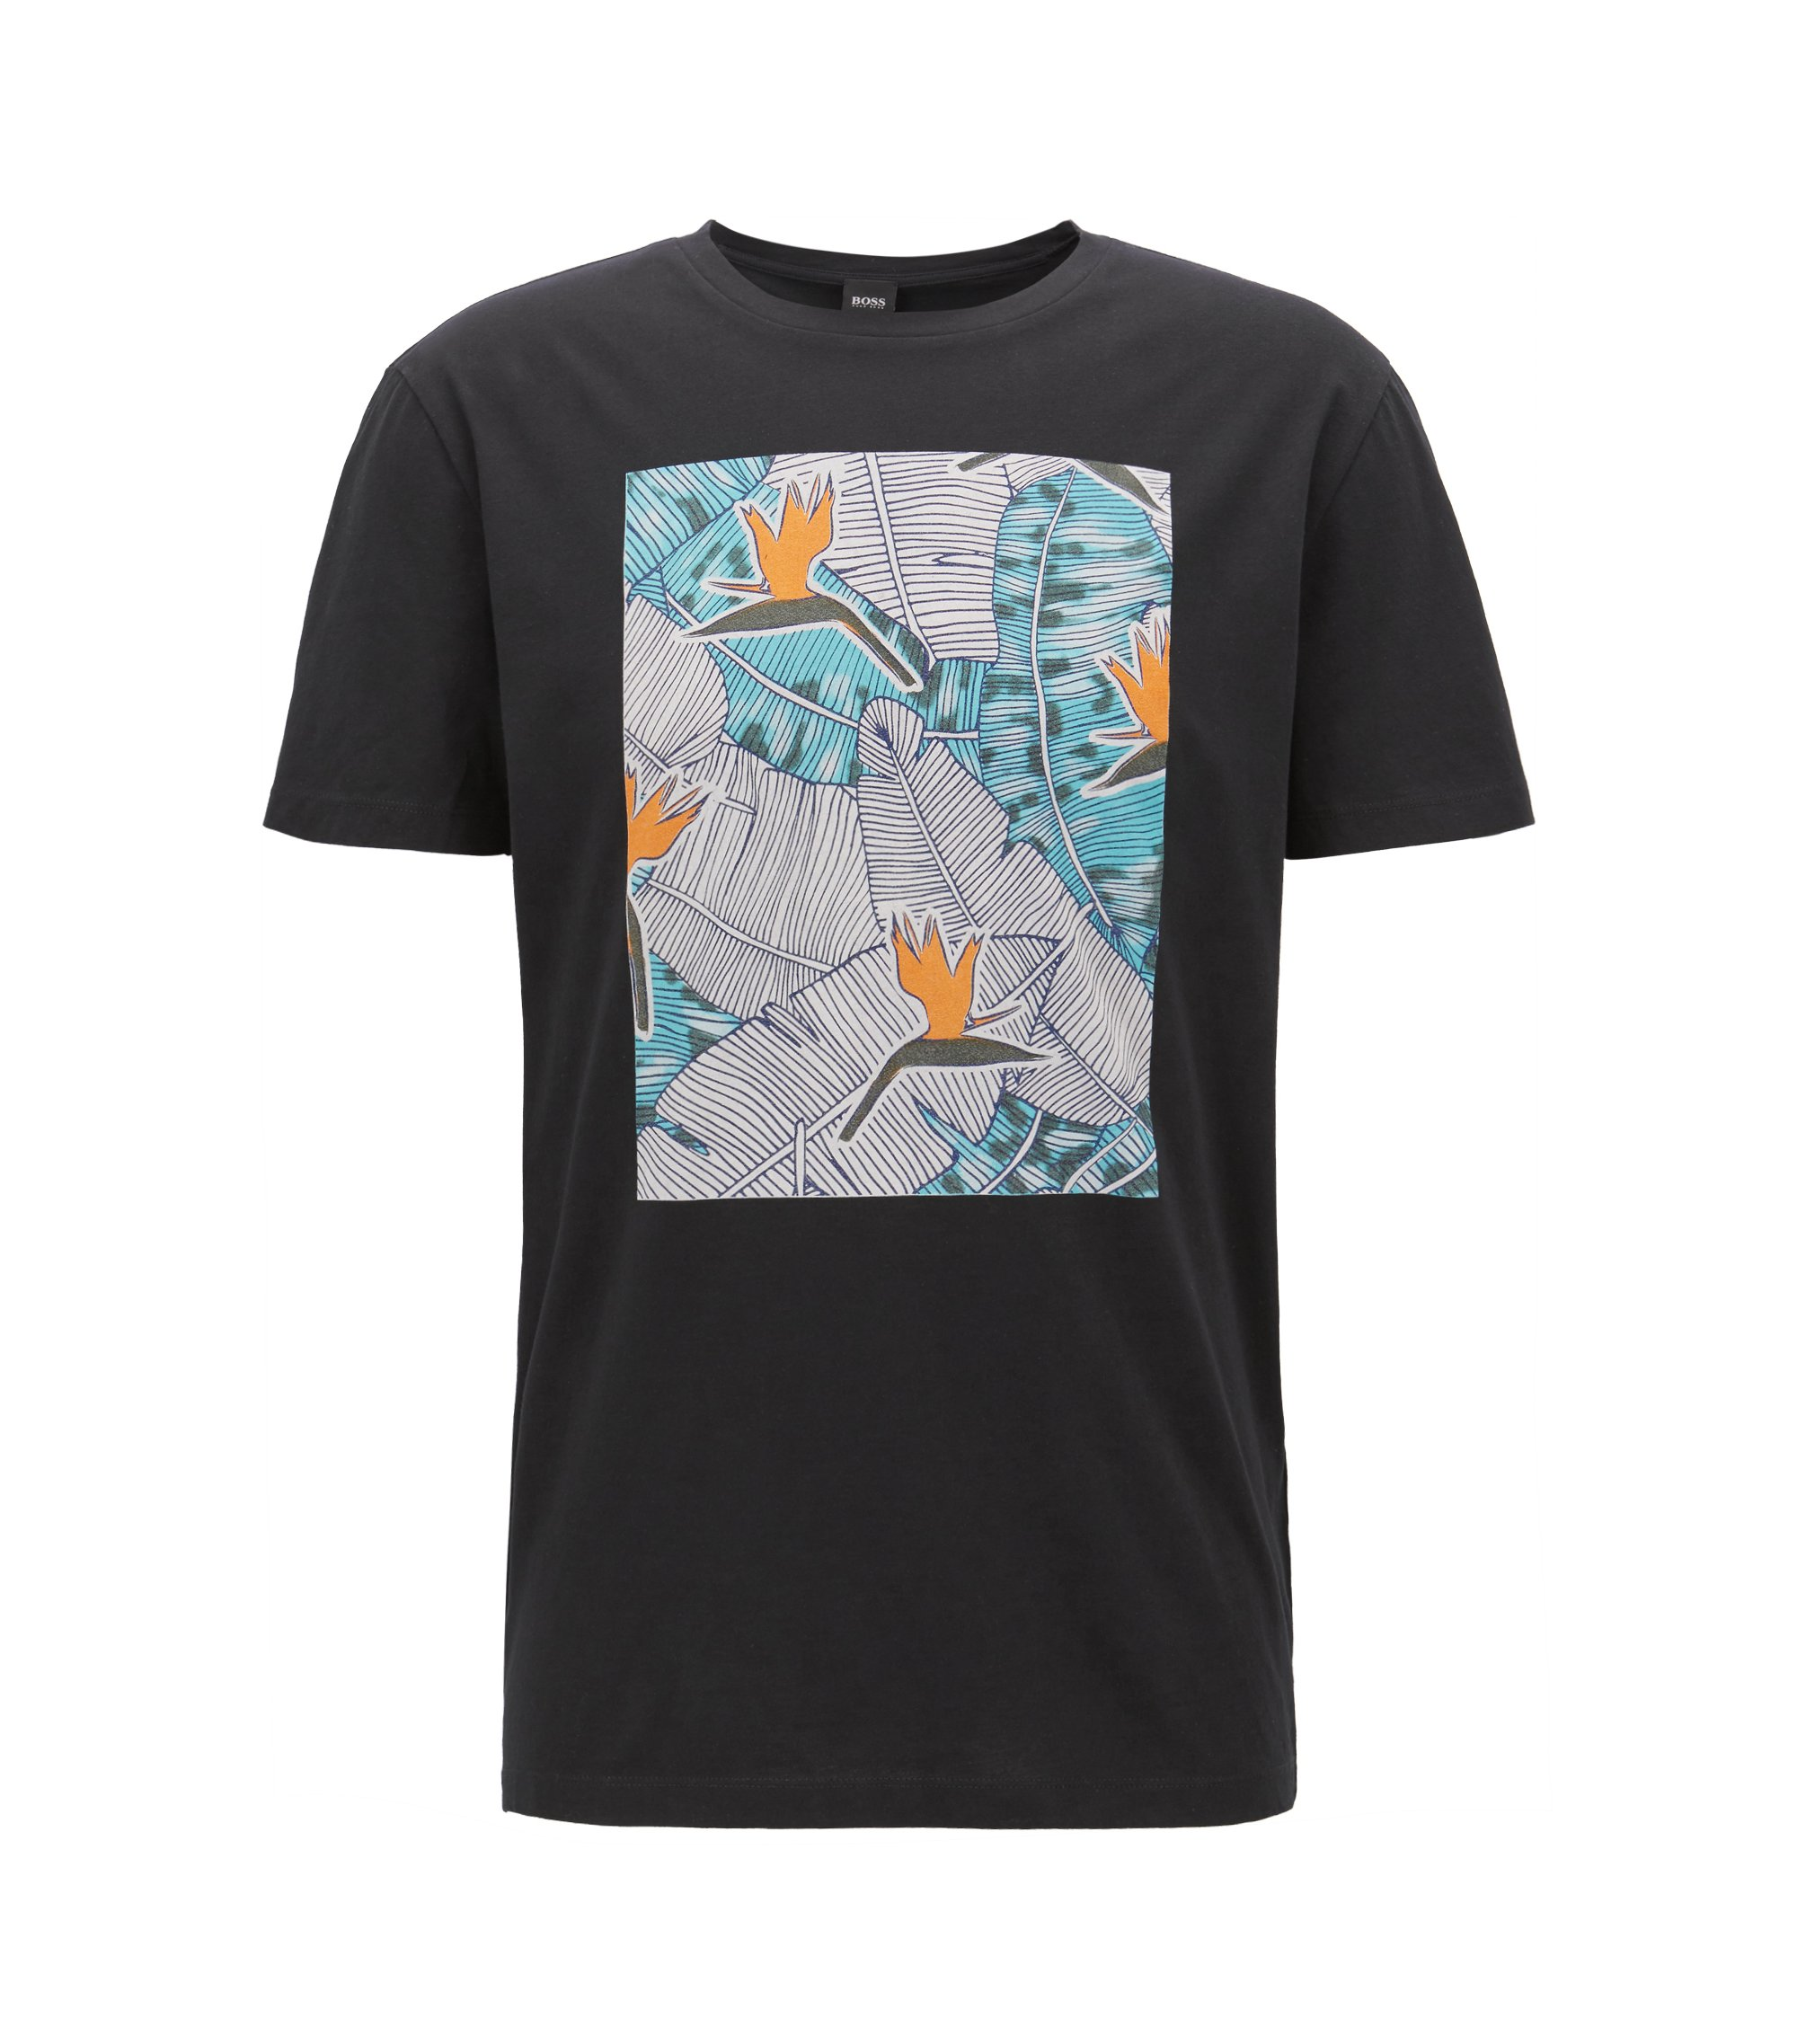 Graphic-print T-shirt in washed cotton jersey, Black